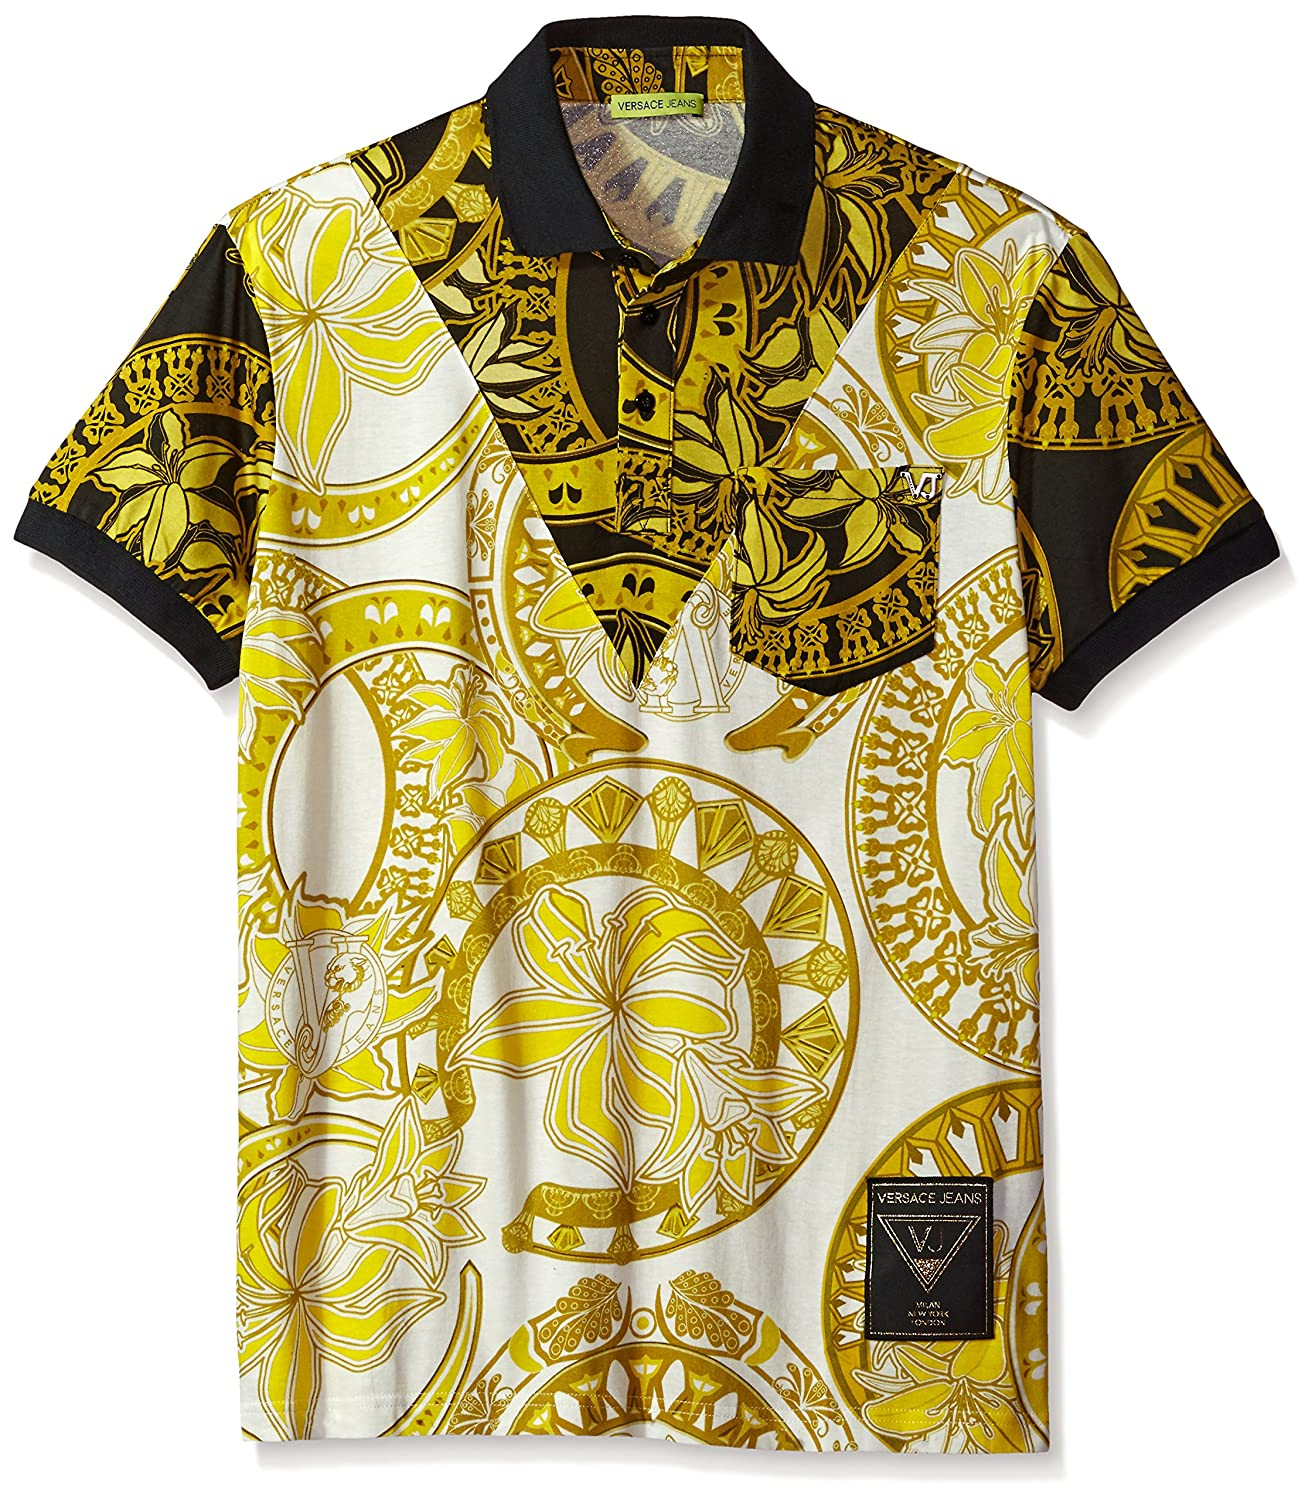 0cfd568c Versace Shirts For Sale In South Africa | Top Mode Depot